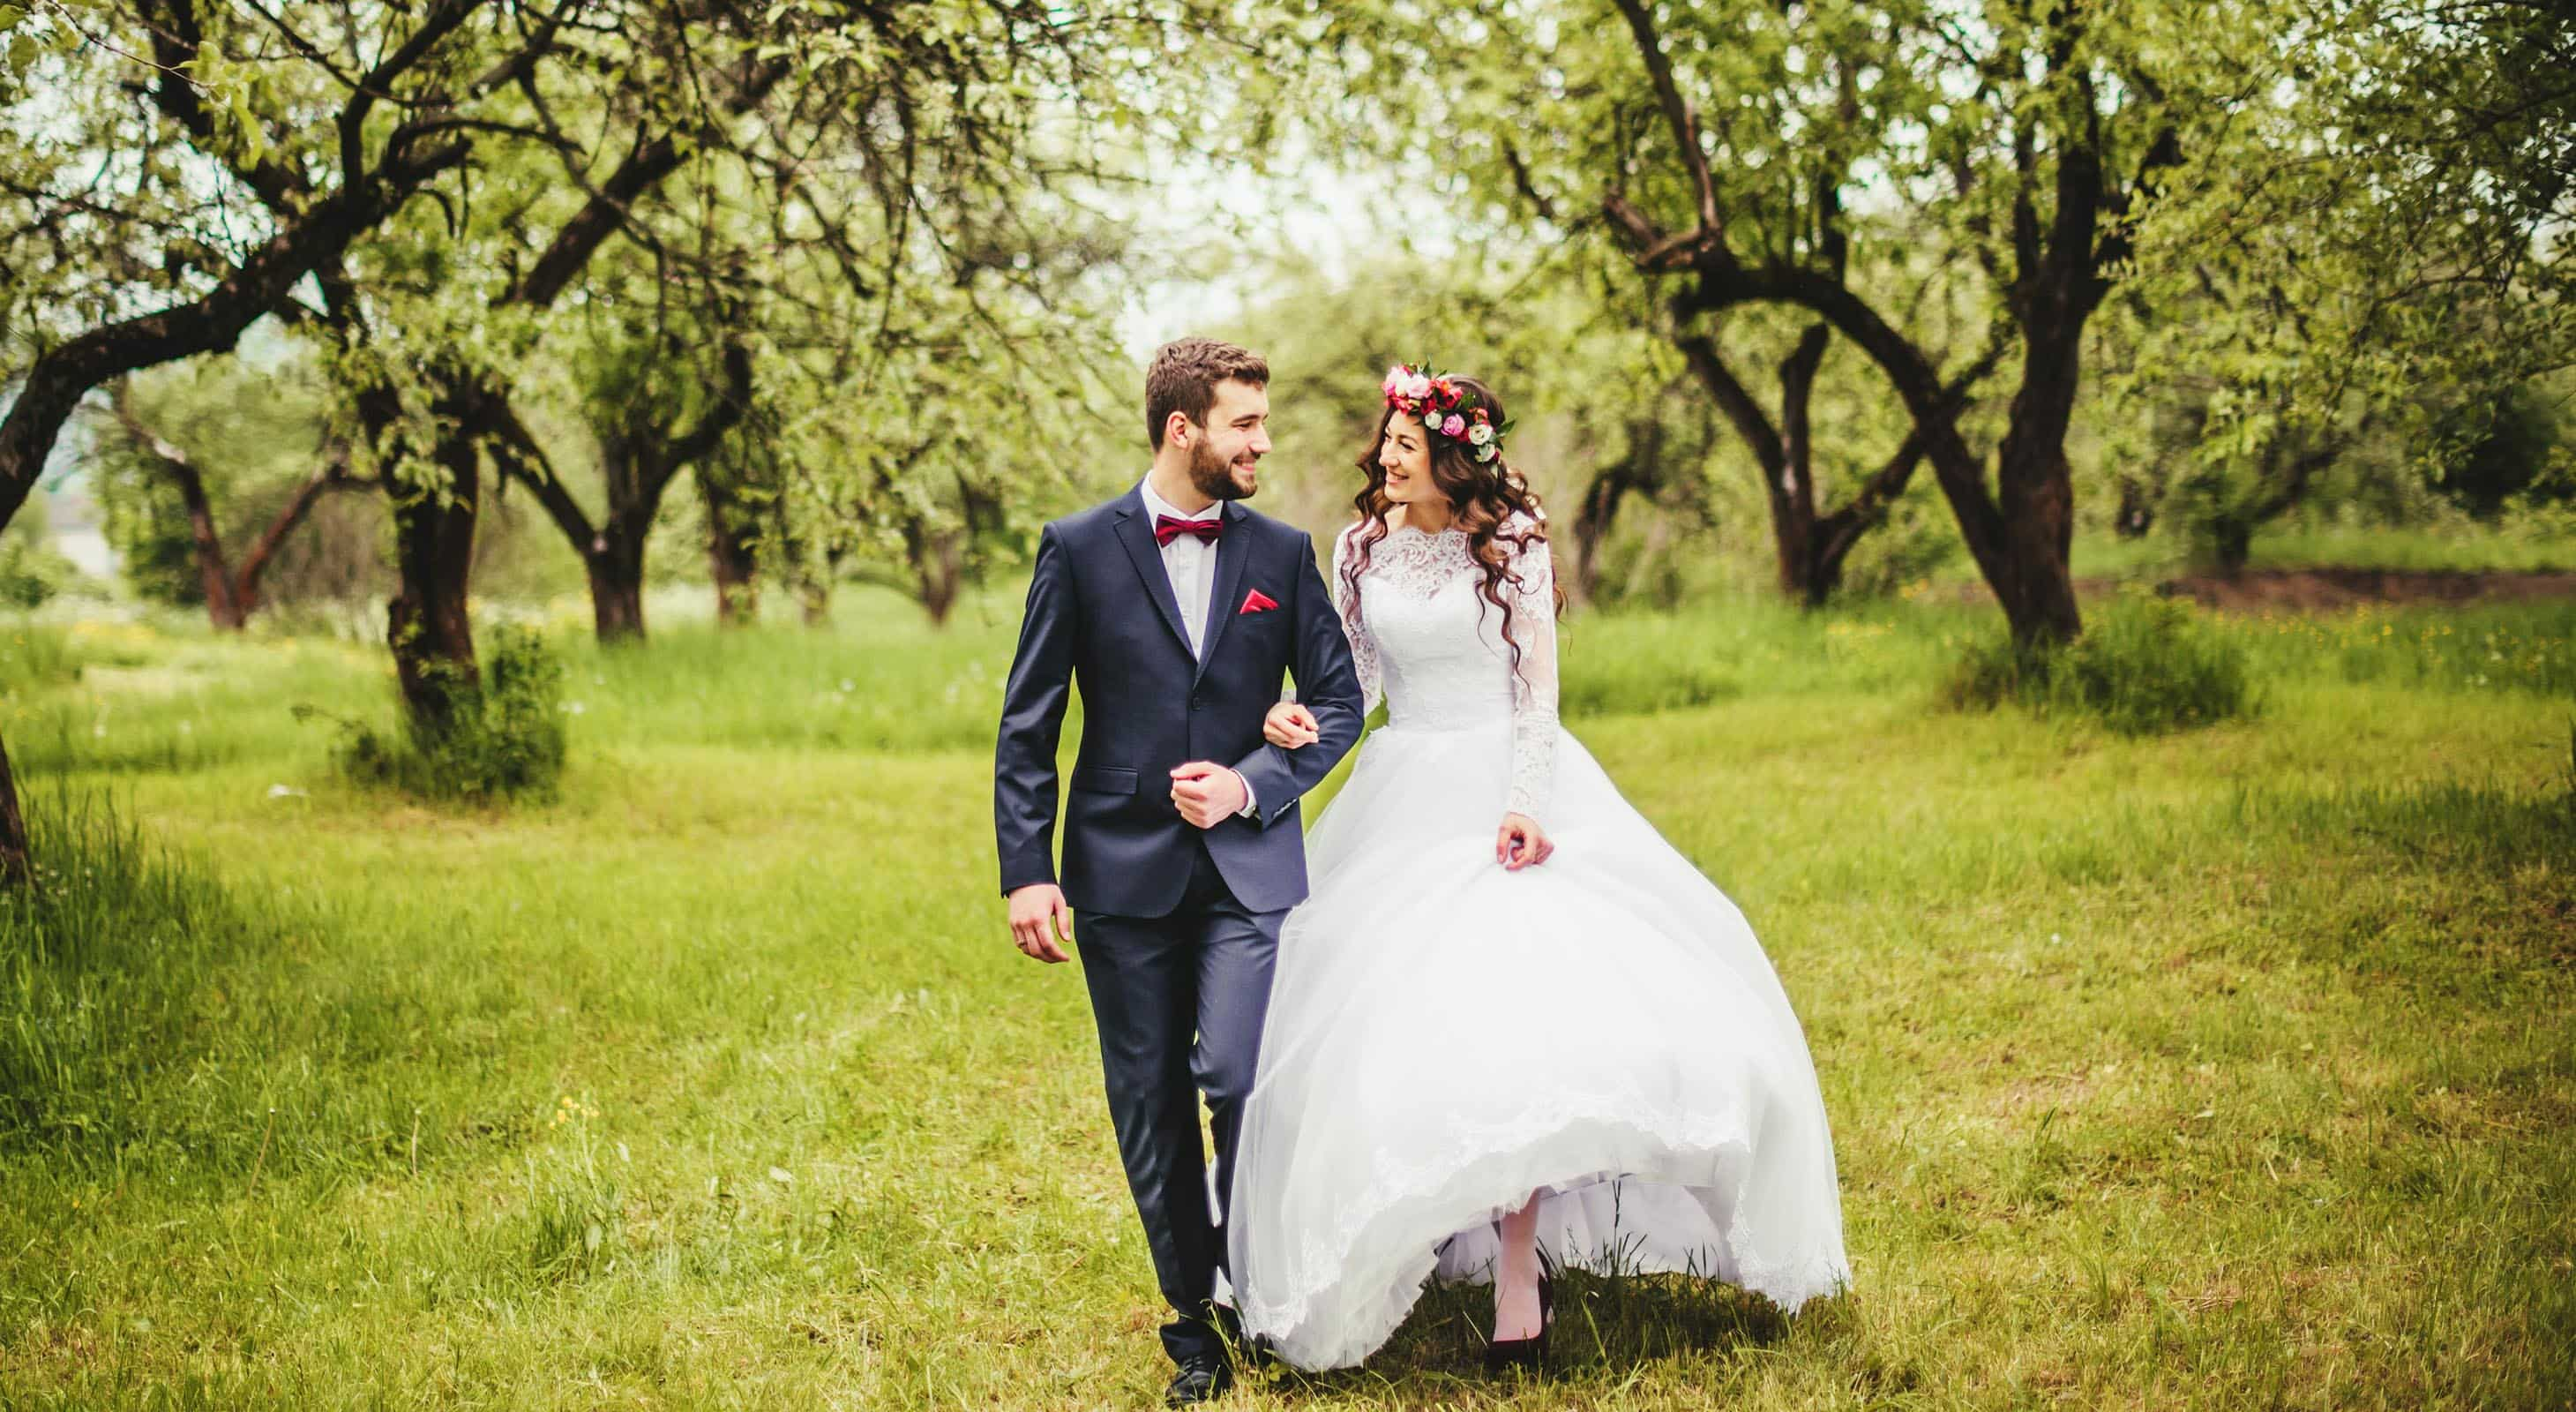 Bride and groom walking in an orchard